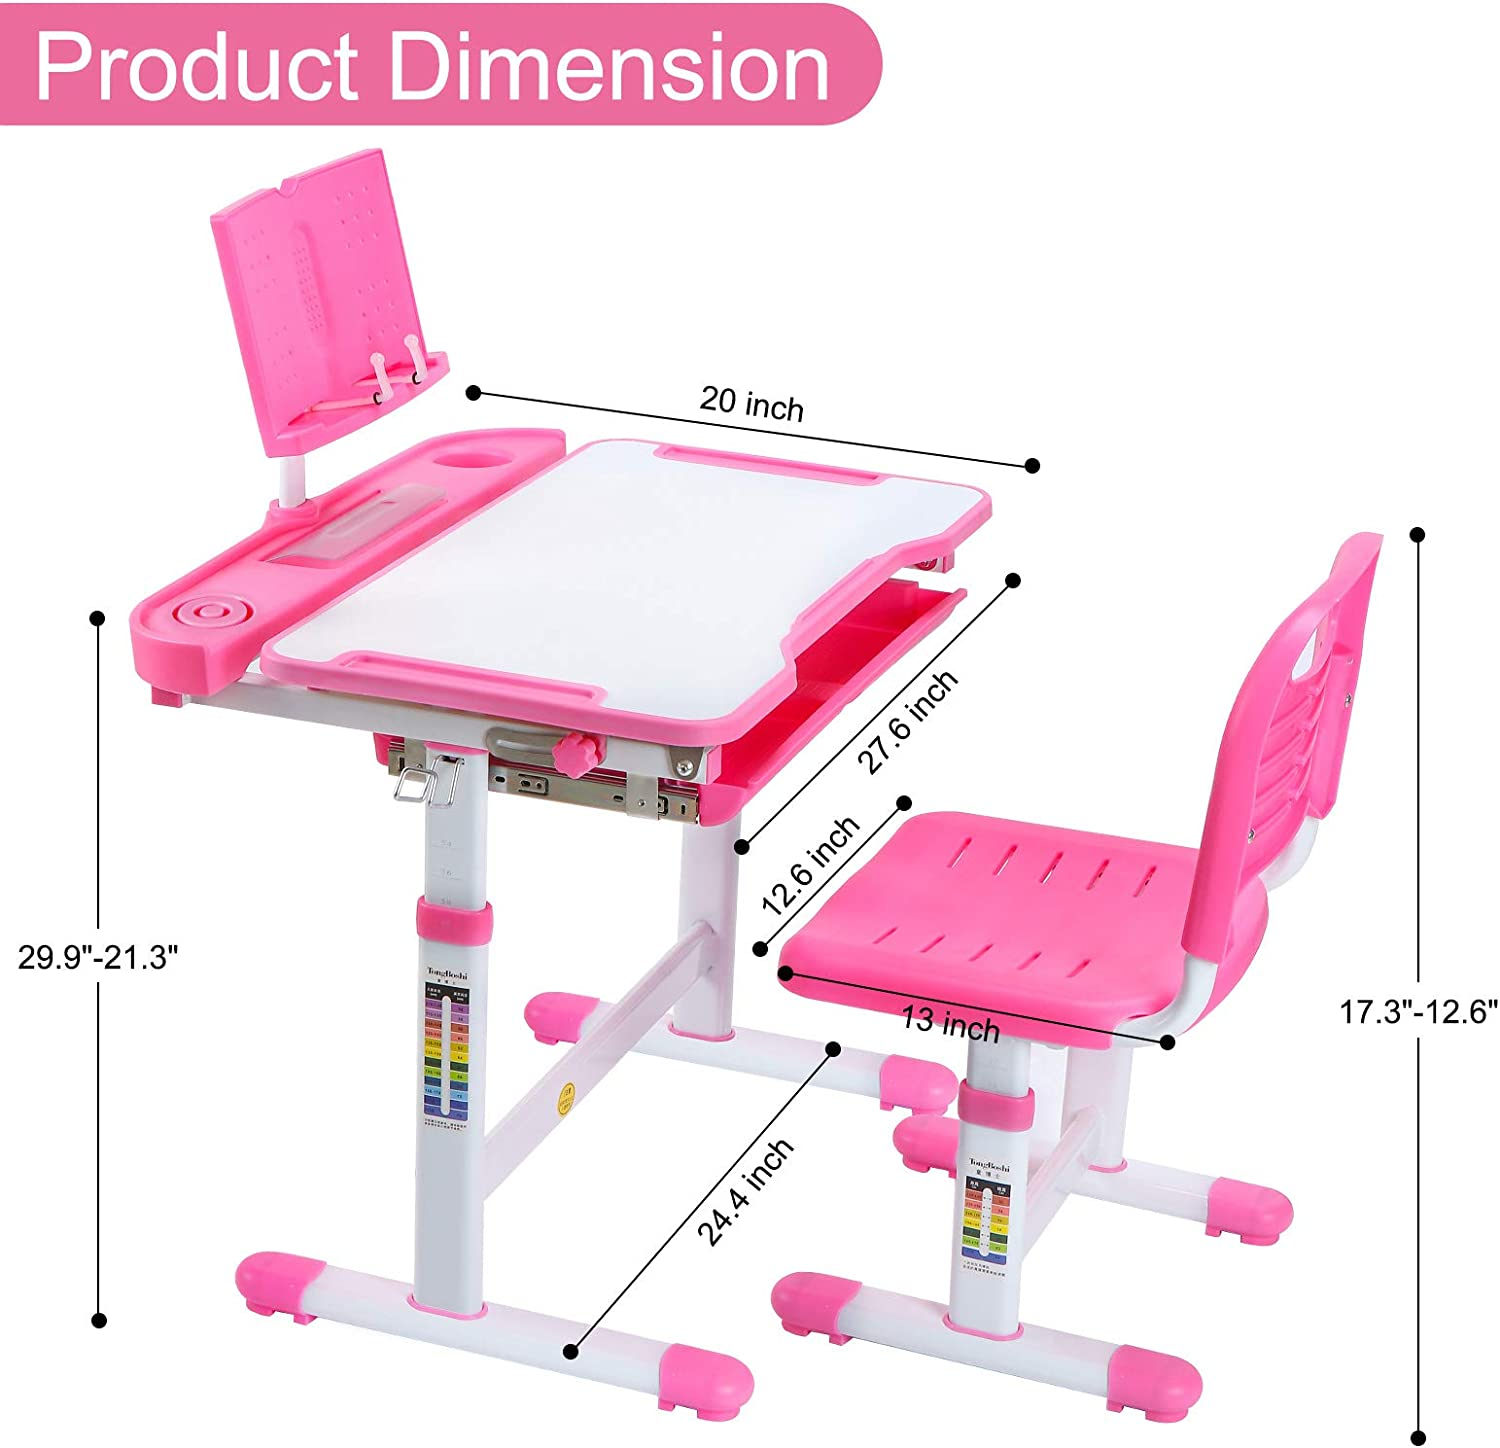 Tilt Desktop with Reading Board Ergonomic Design Home School Use Student Anti-Reflective Writing Desk Red Pull Out Storage Drawer Kids Desk and Chair Set Height Adjustable Children Study Table